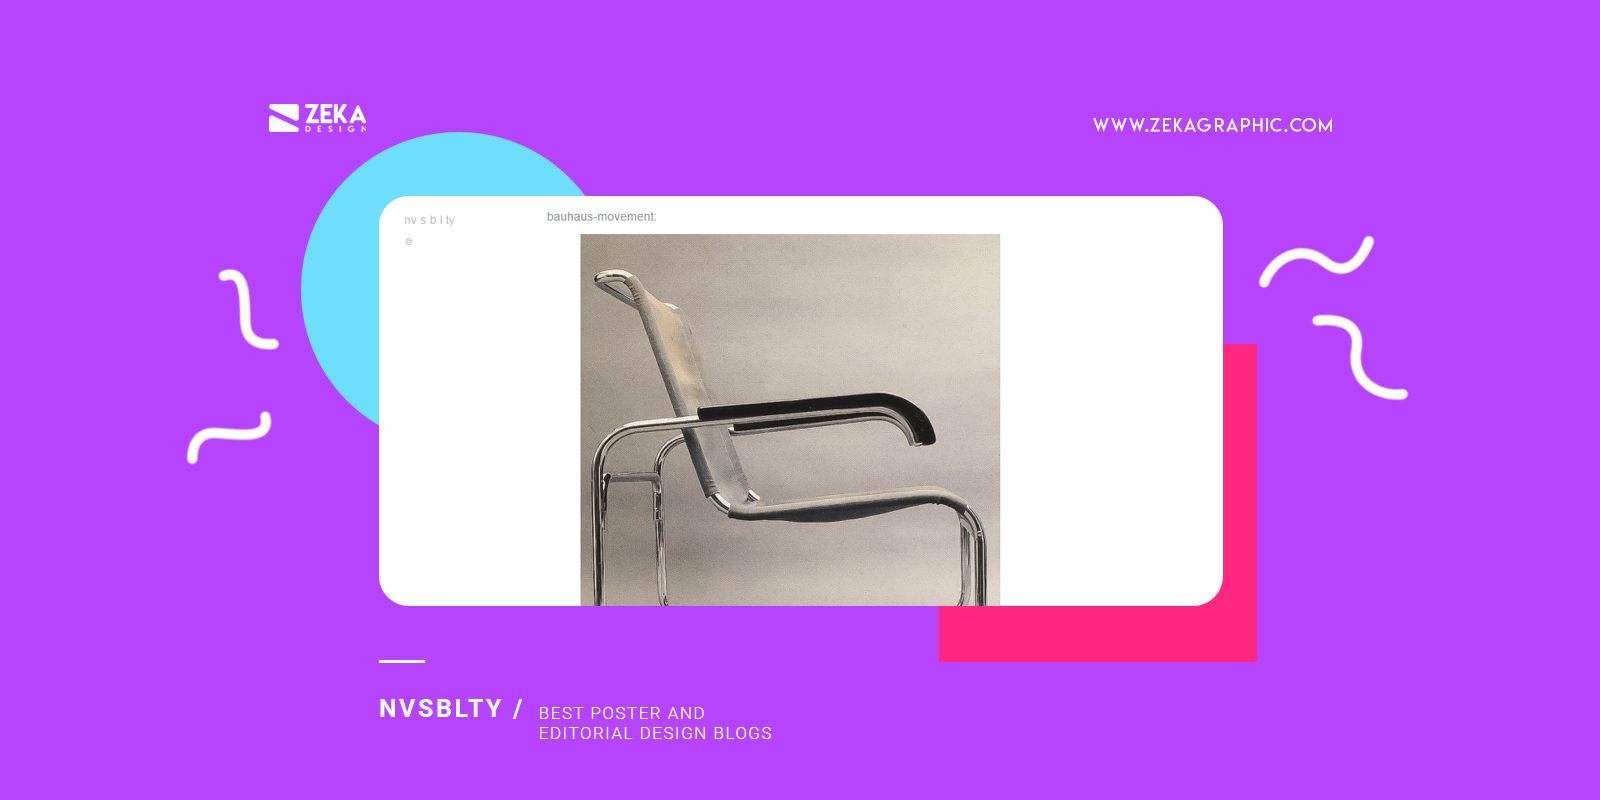 nvsblty Best poster and editorial design blogs